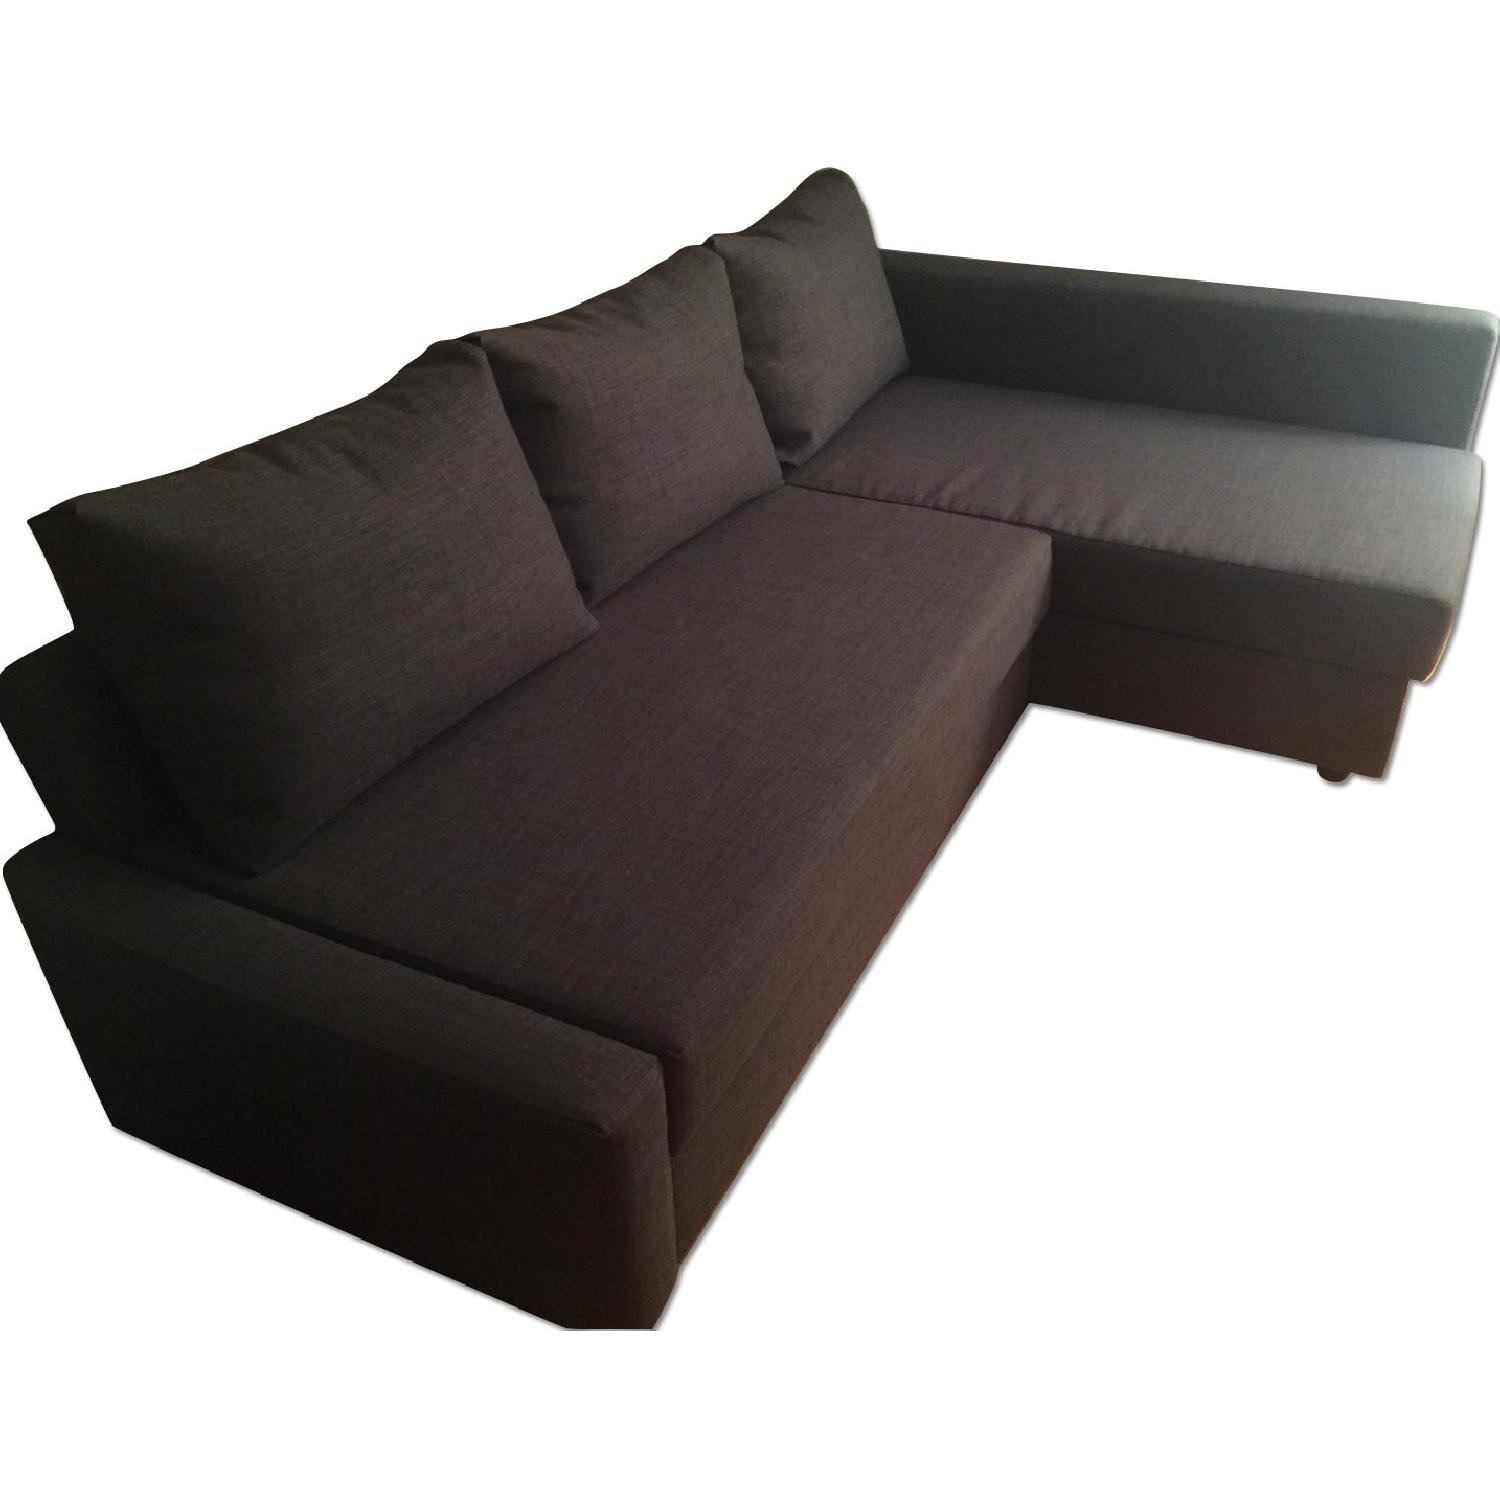 friheten ikea sofa bed review. Black Bedroom Furniture Sets. Home Design Ideas